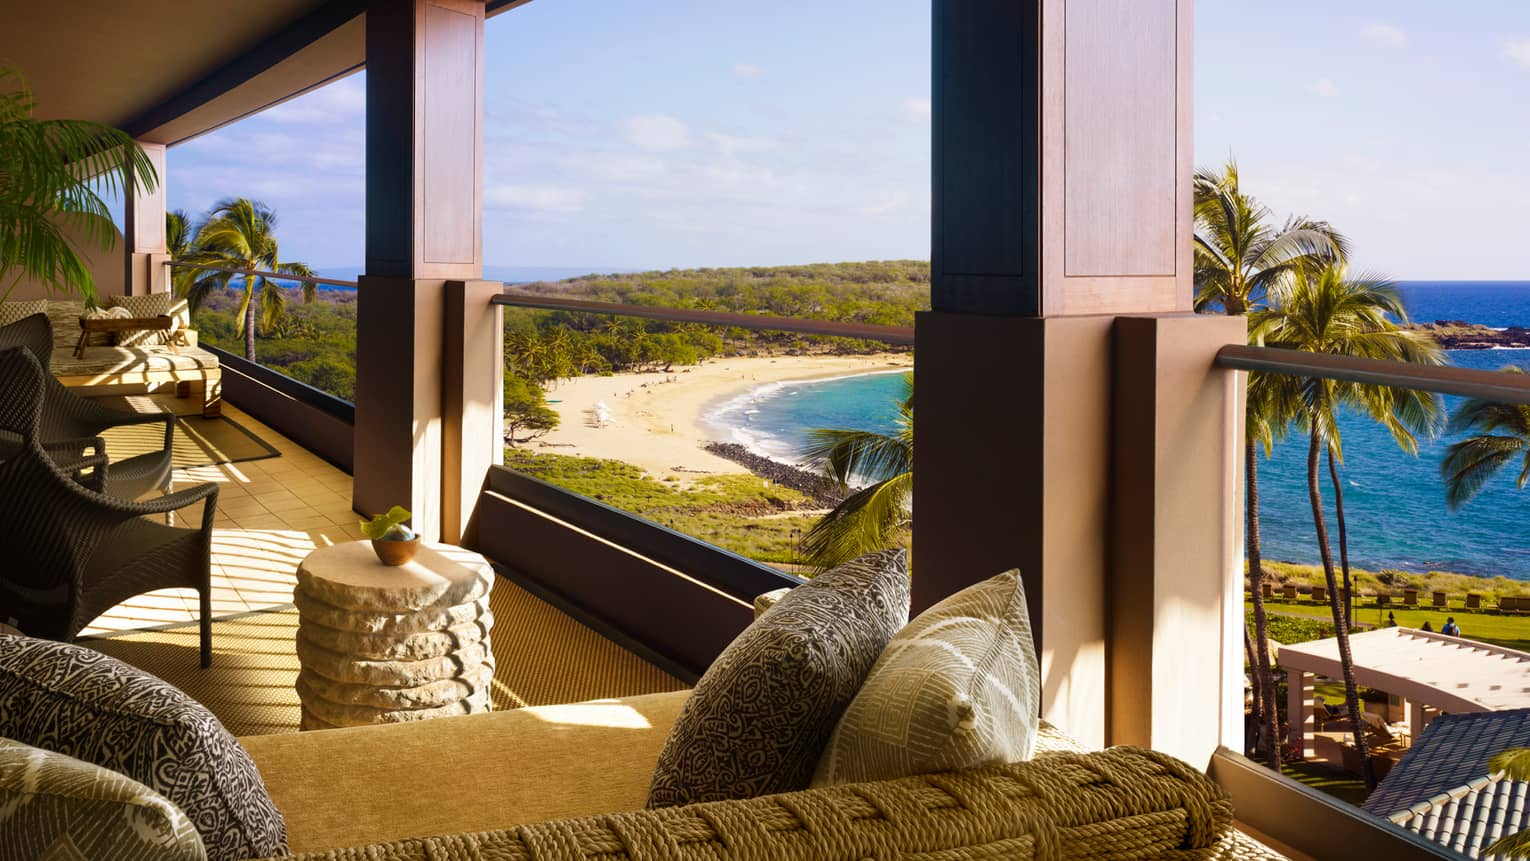 Open-air lanai with sofas, lounge furniture overlooking beach, ocean